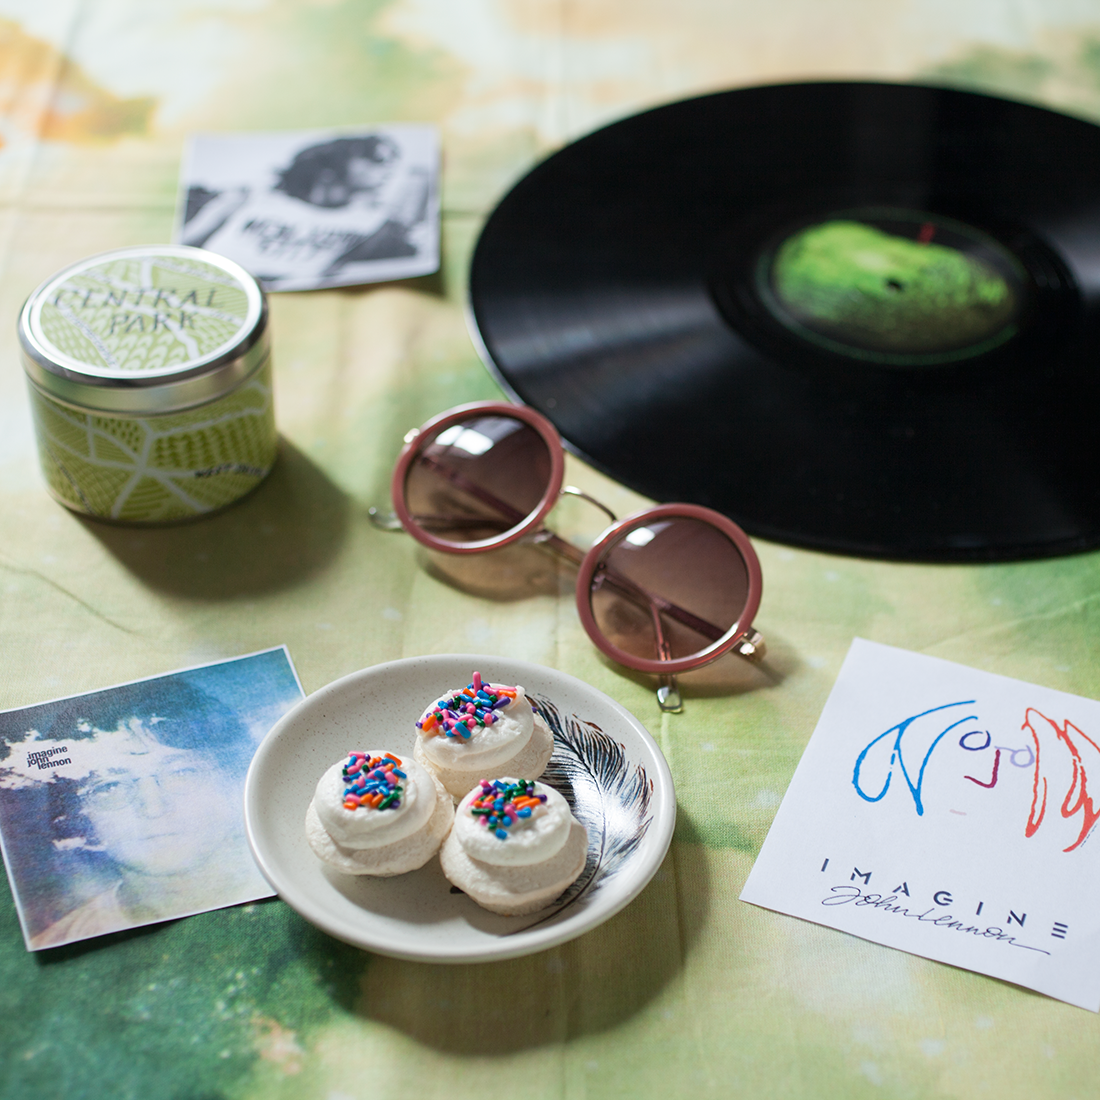 Celebrating @JohnLennon's 75th birthday w/ @lennonbus and this Imagine Cupcake Gift Box http://t.co/dD0vB5Q4NG http://t.co/QUOBD0voN8